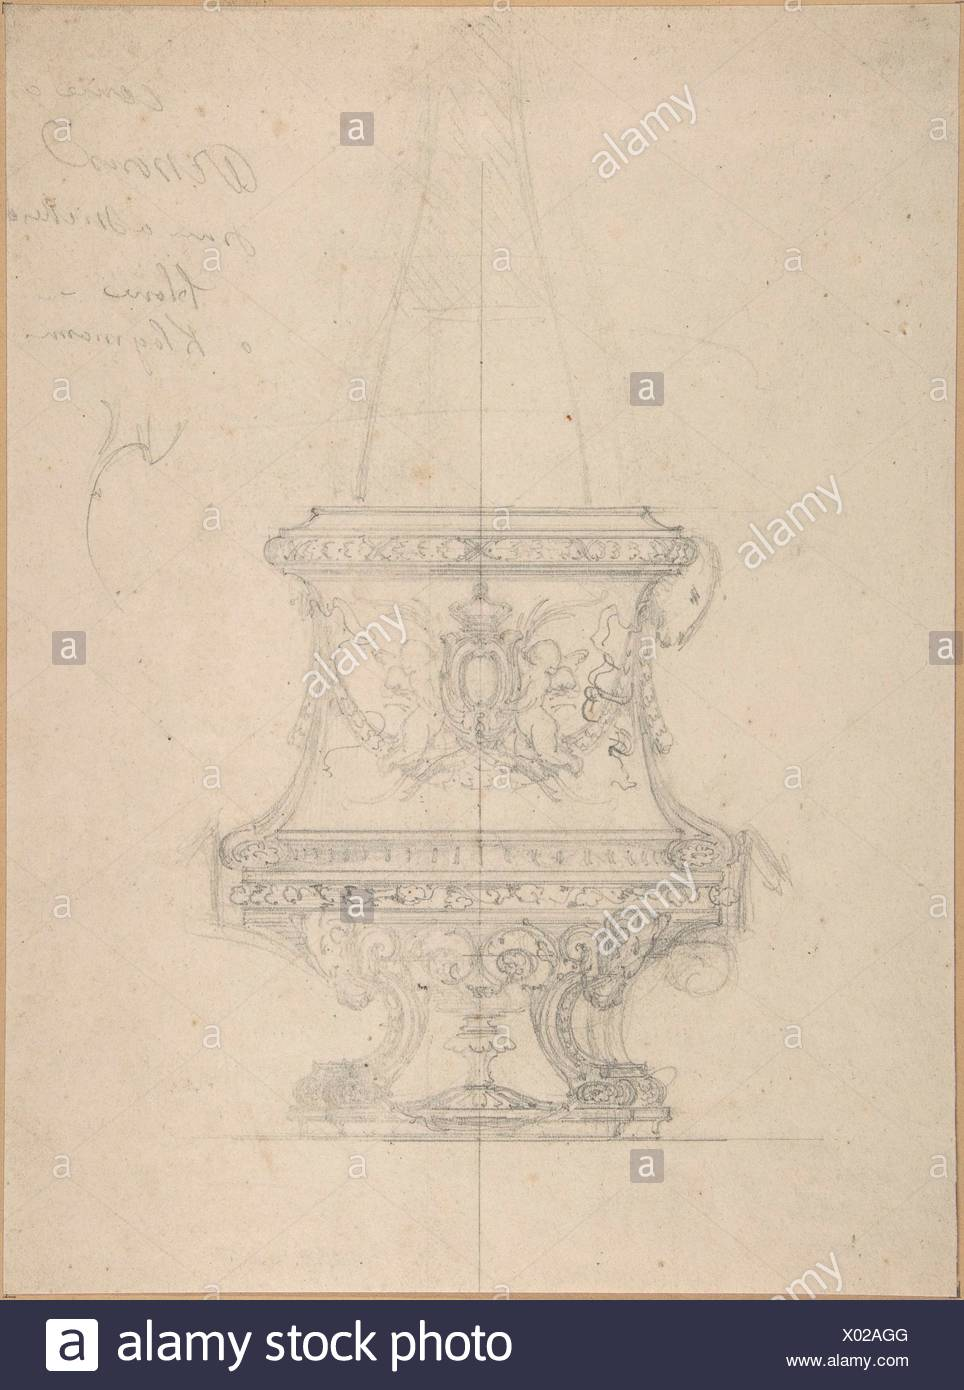 Design for a Vase with Rams' Heads in Renaissance Style. Artist: Anonymous, French, 19th century; Date: 19th century; Medium: Graphite. Framing lines - Stock Image